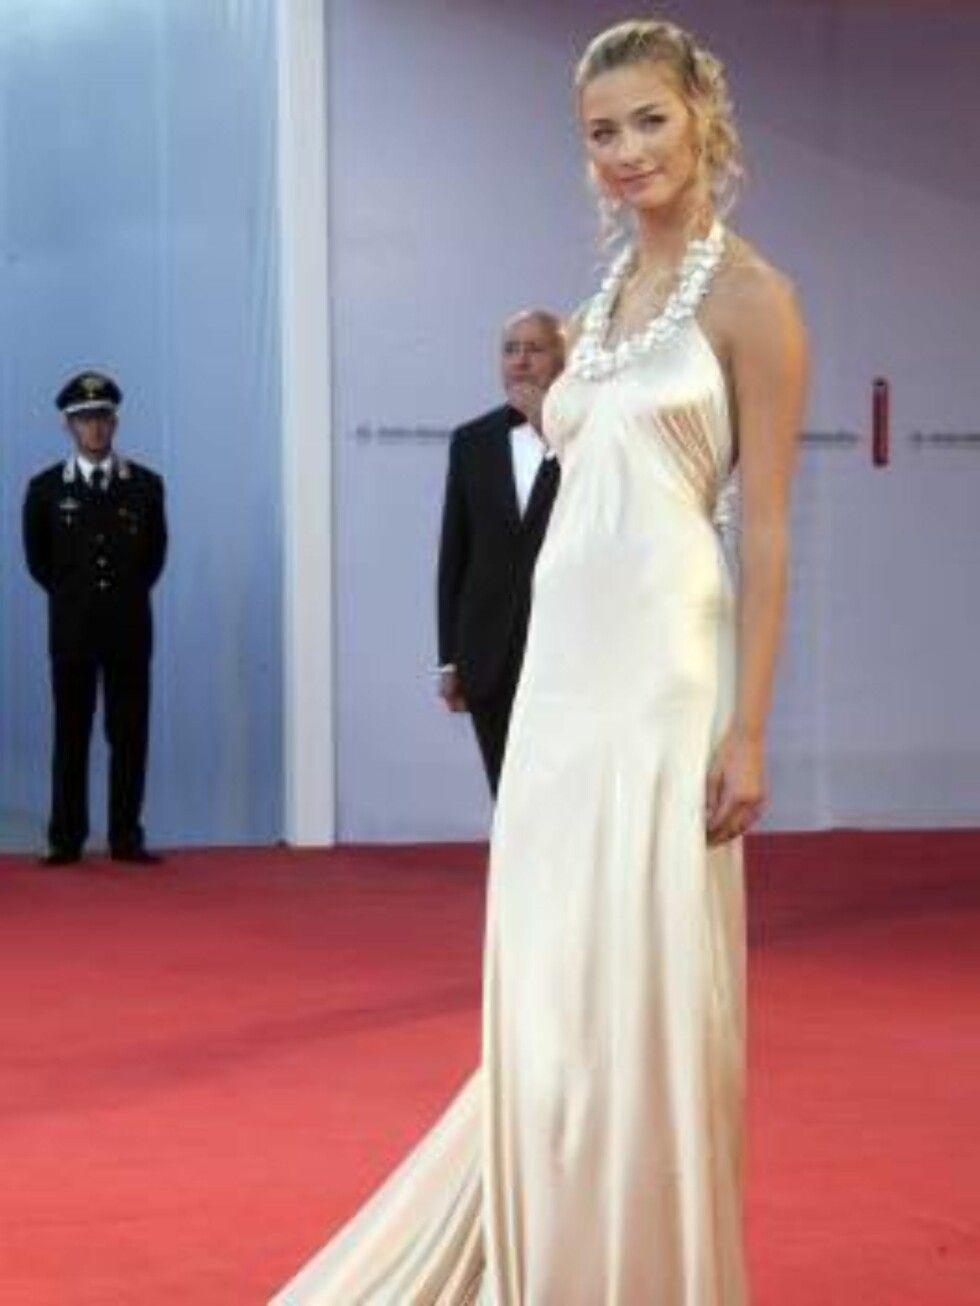 VENICE, ITALY - AUGUST 30:  Italian model Beatrice Borromeo arrives at the opening ceremony and 'The Black Dahlia' premiere on the first day of the 63rd Venice Film Festival on August 30, 2006 in Venice, Italy.  (Photo by Pascal Le Segretain/Getty Images) Foto: All Over Press